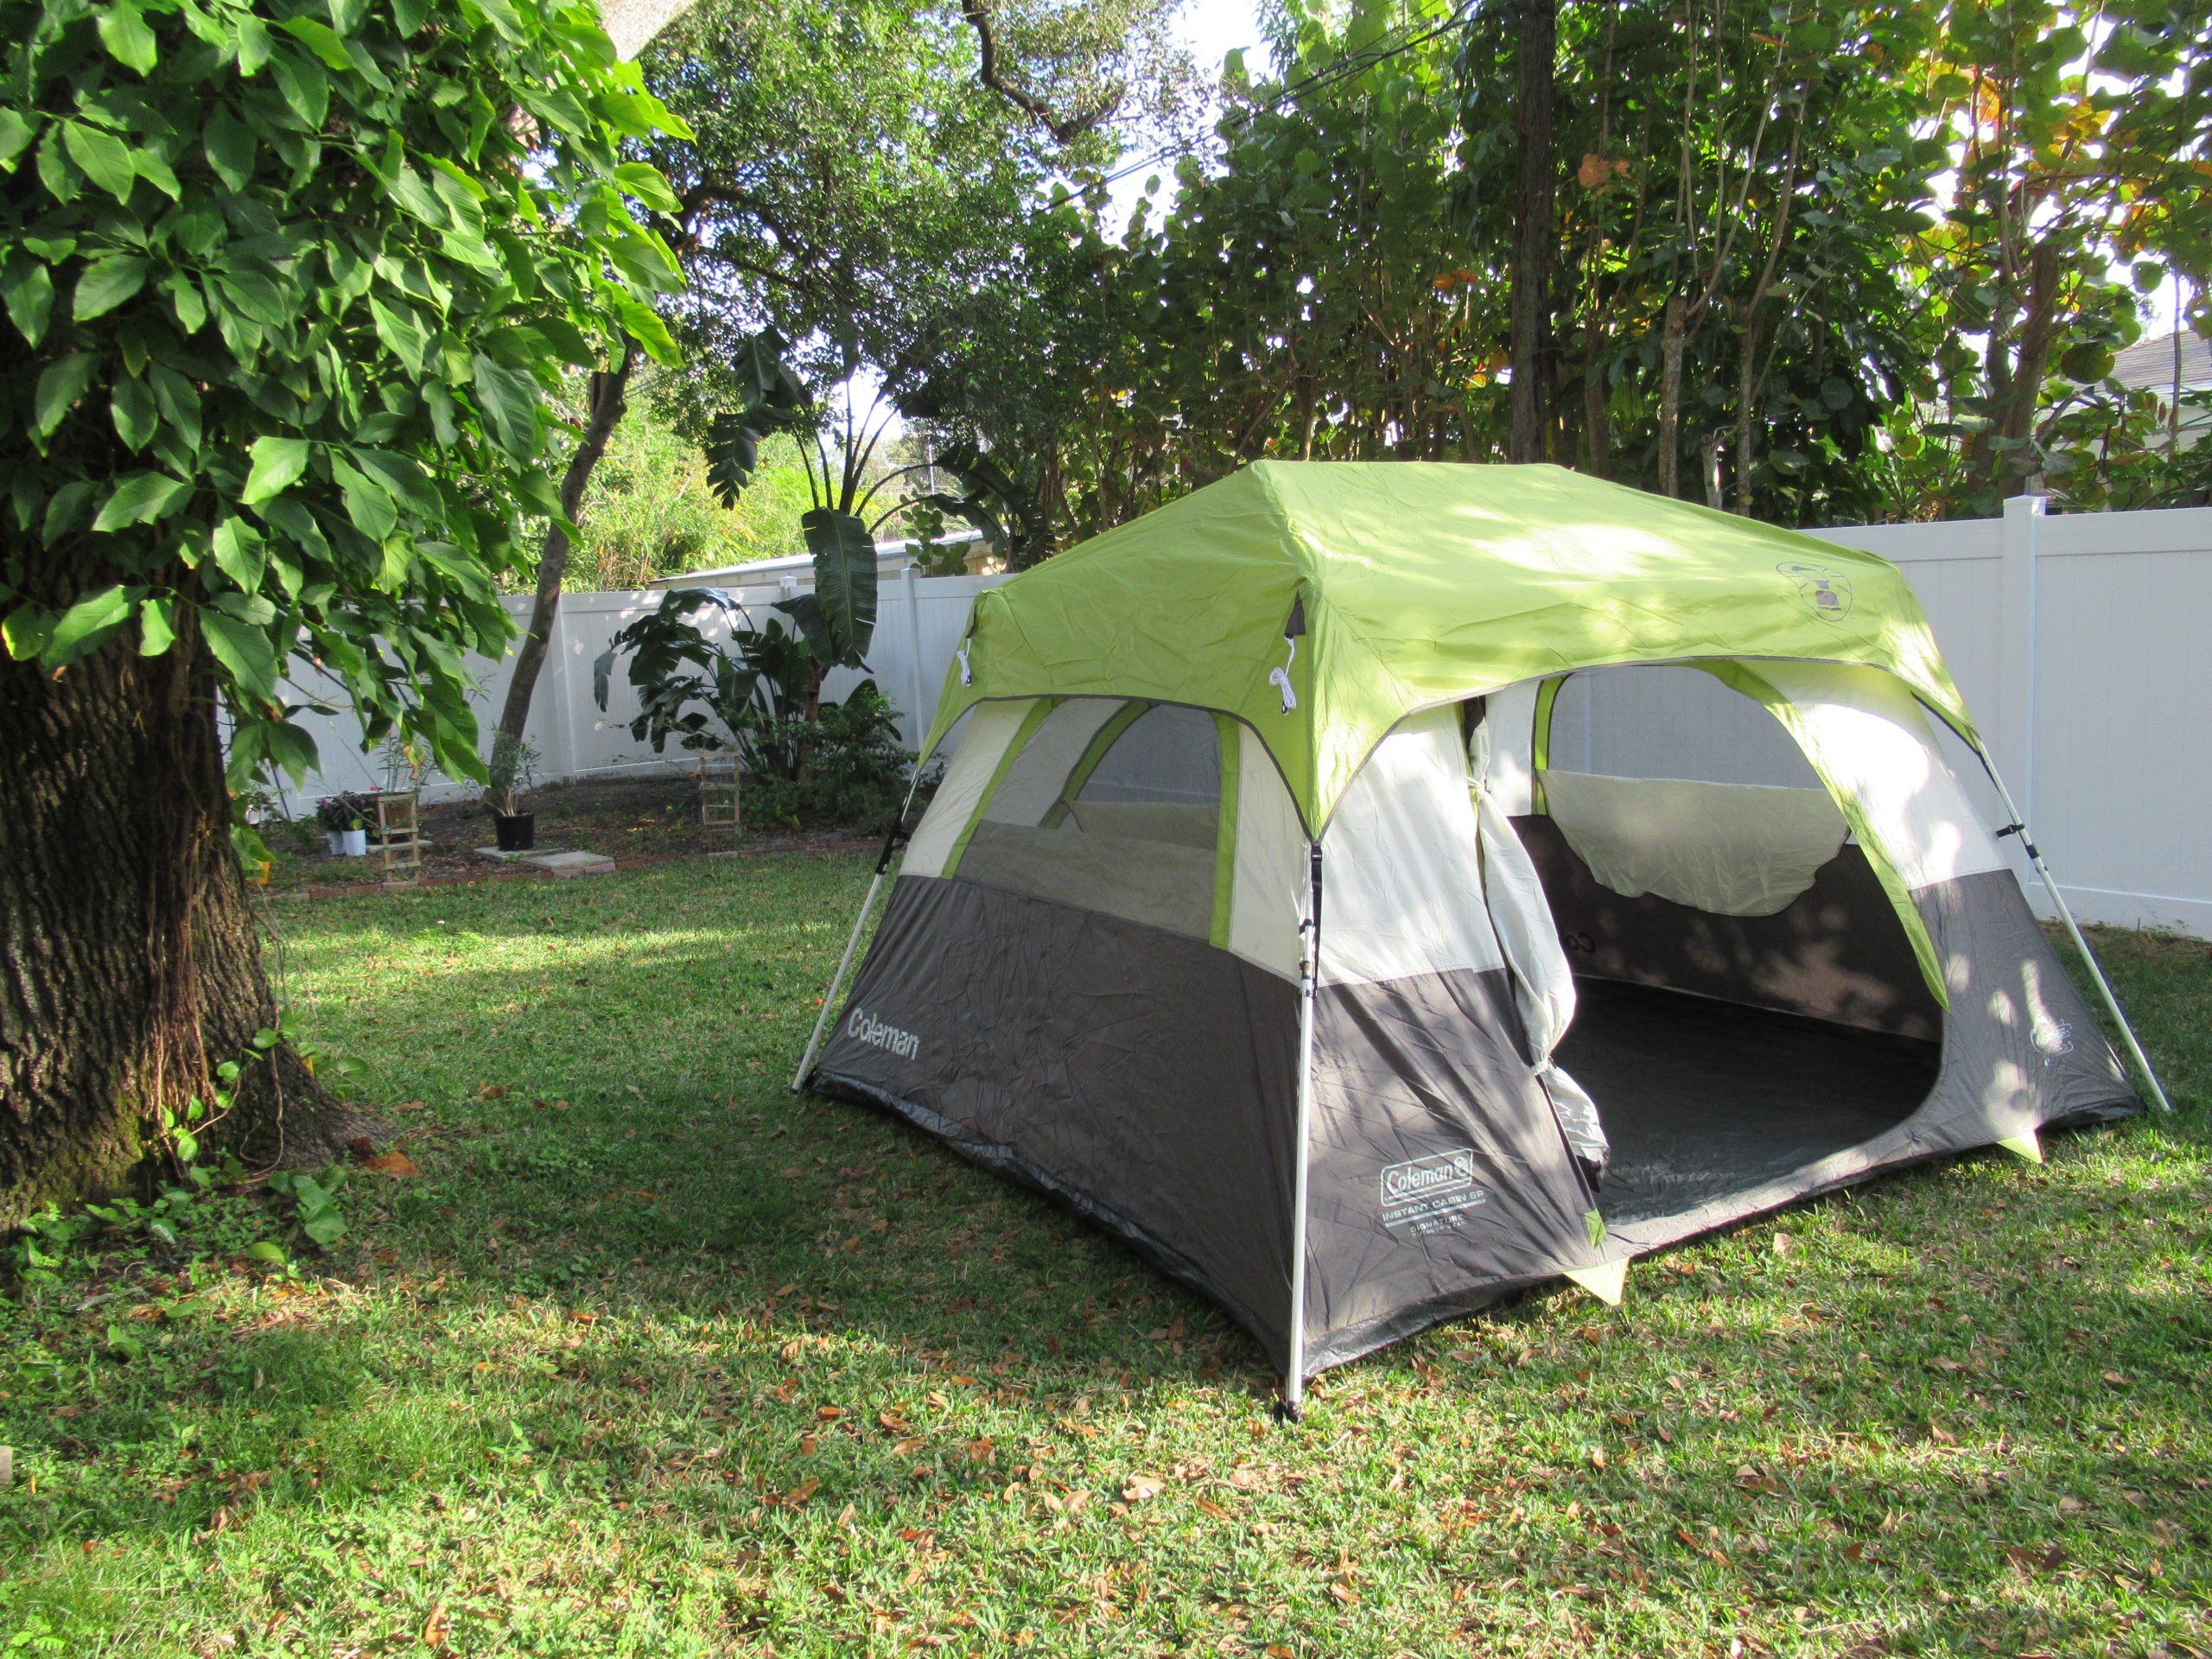 A tent set up for camping in the backyard